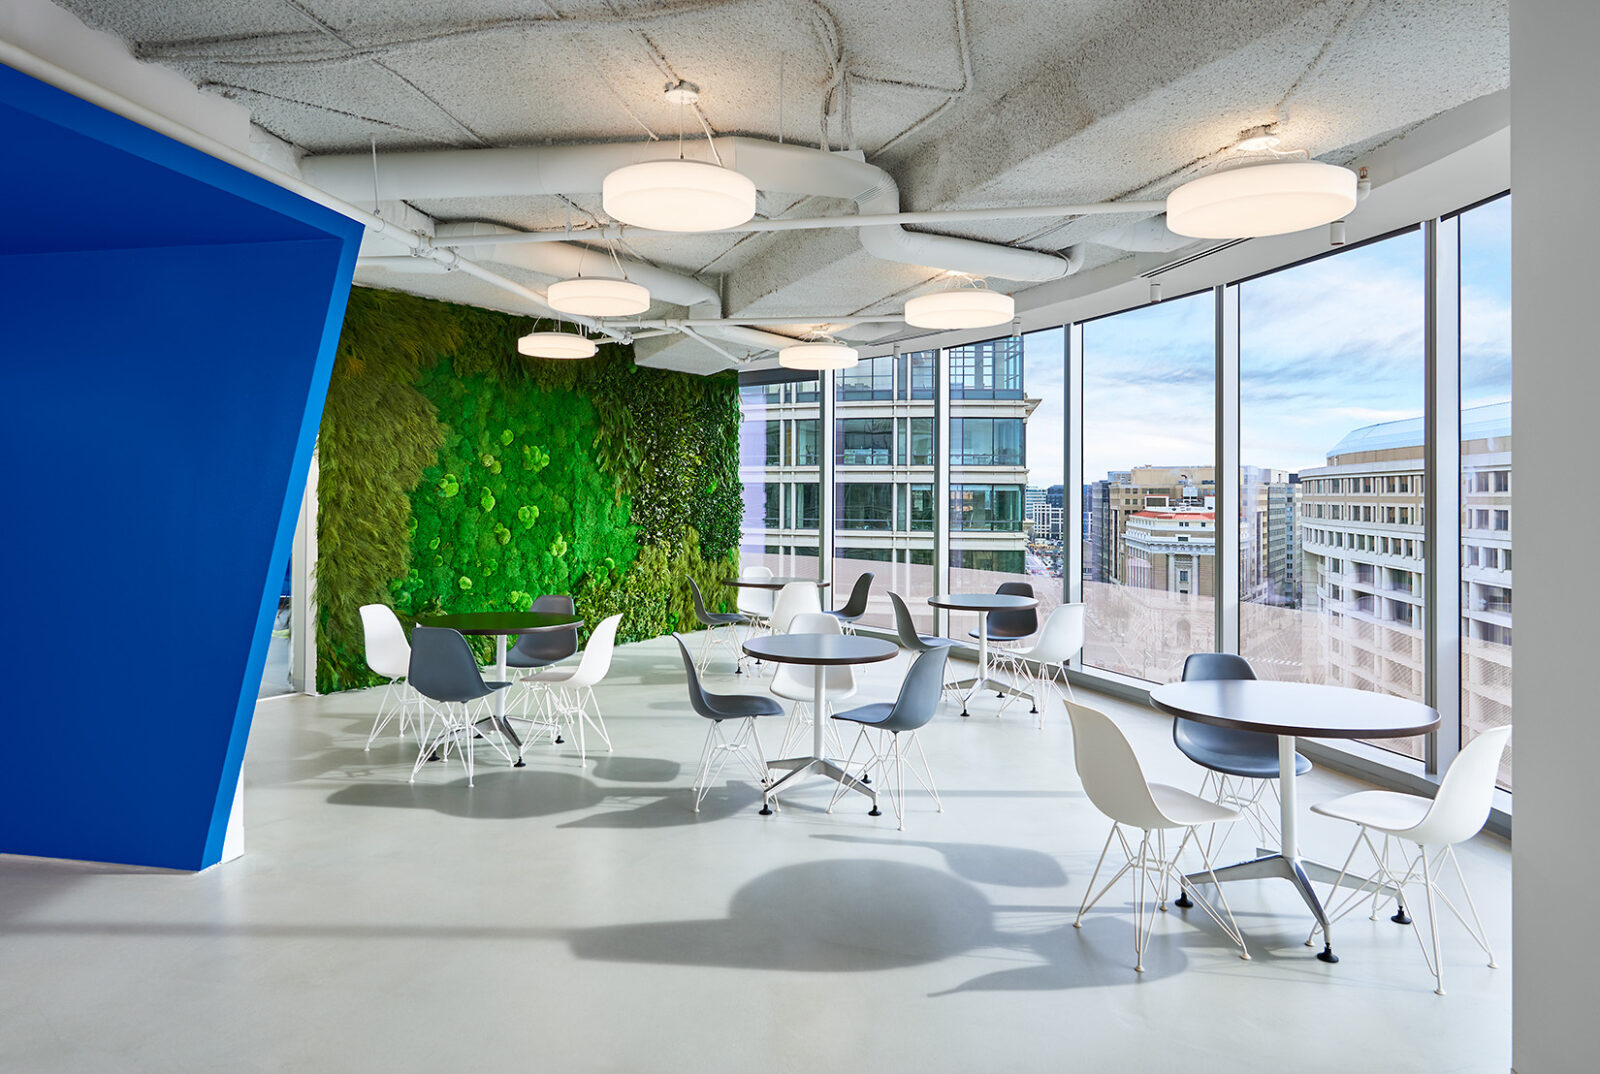 Creative Office Pavilion Corporate Social Responsibility Sustainability Recycling Program environmental solutions